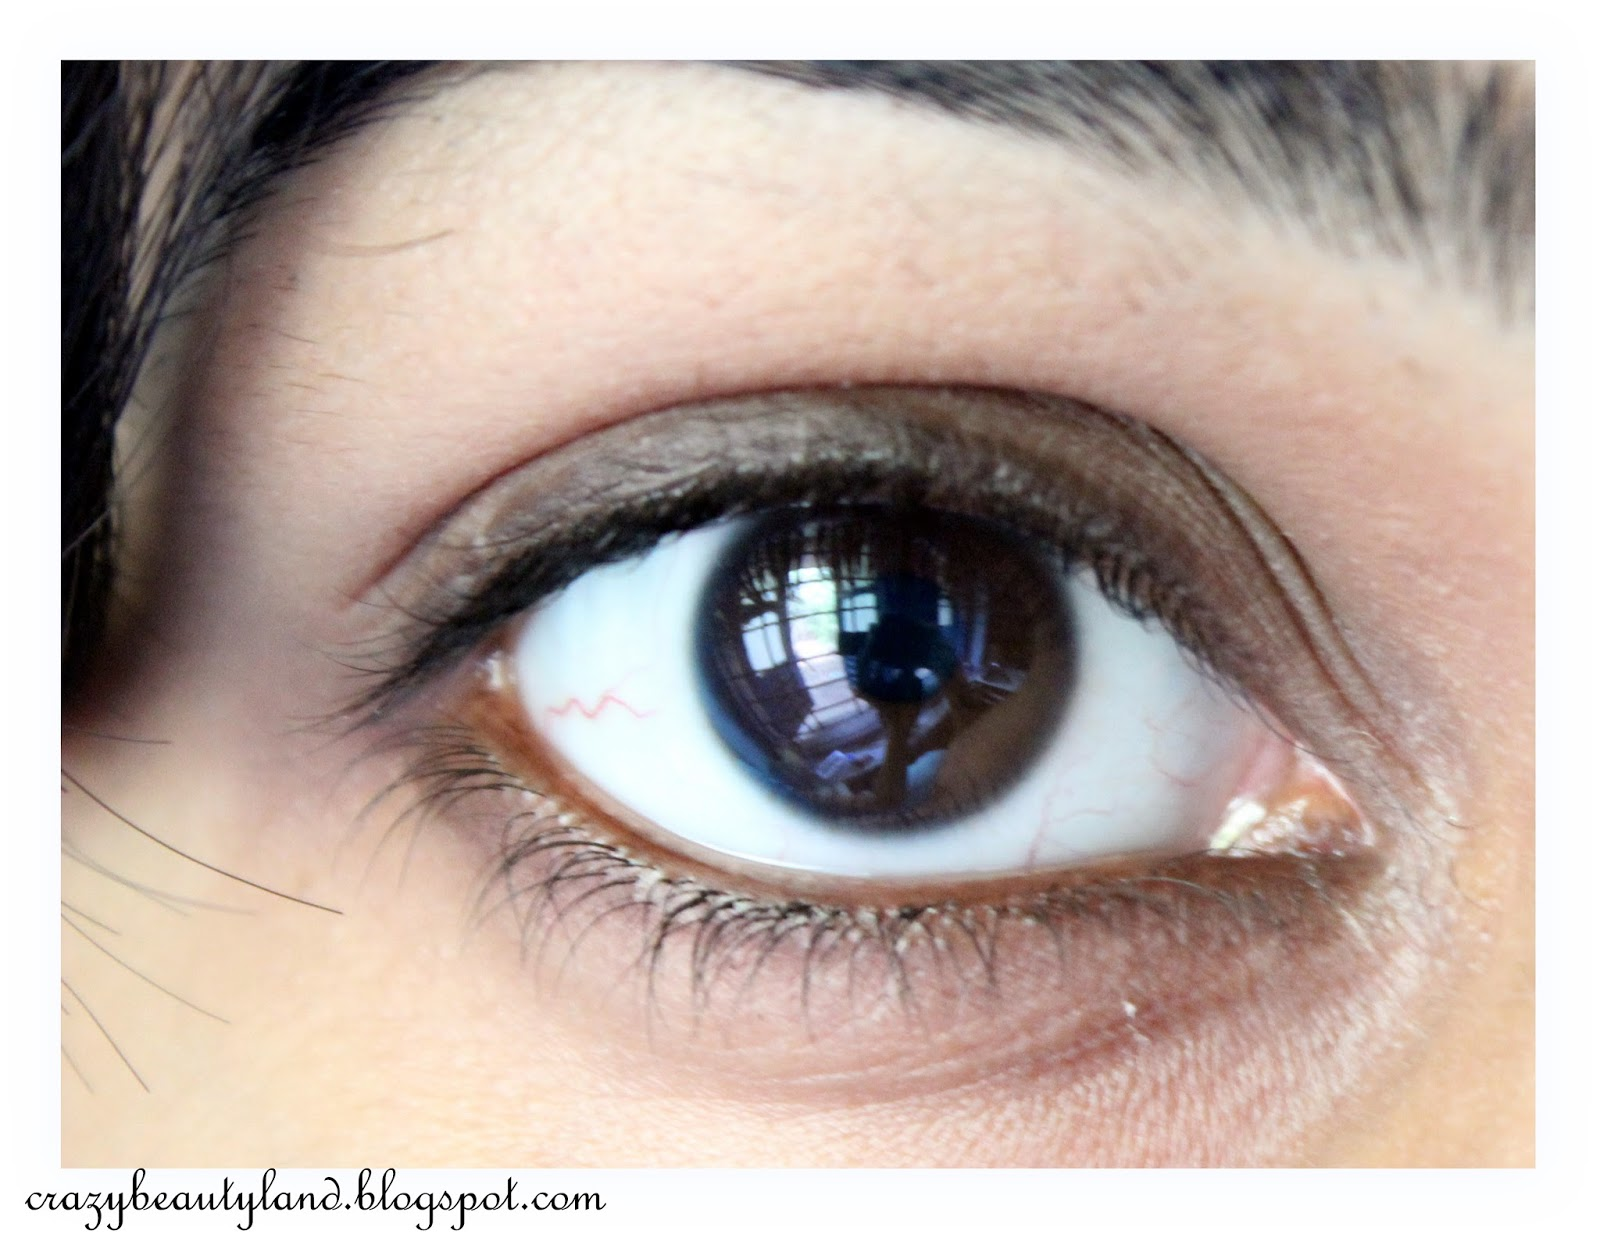 Lakme Eyeconic 10 Hr Kajal in Brown- Review,Price, Swatches, Photos, EOTD, how to use, smoky eye look, smoky brown eyes, everyday makeup, buy online in india